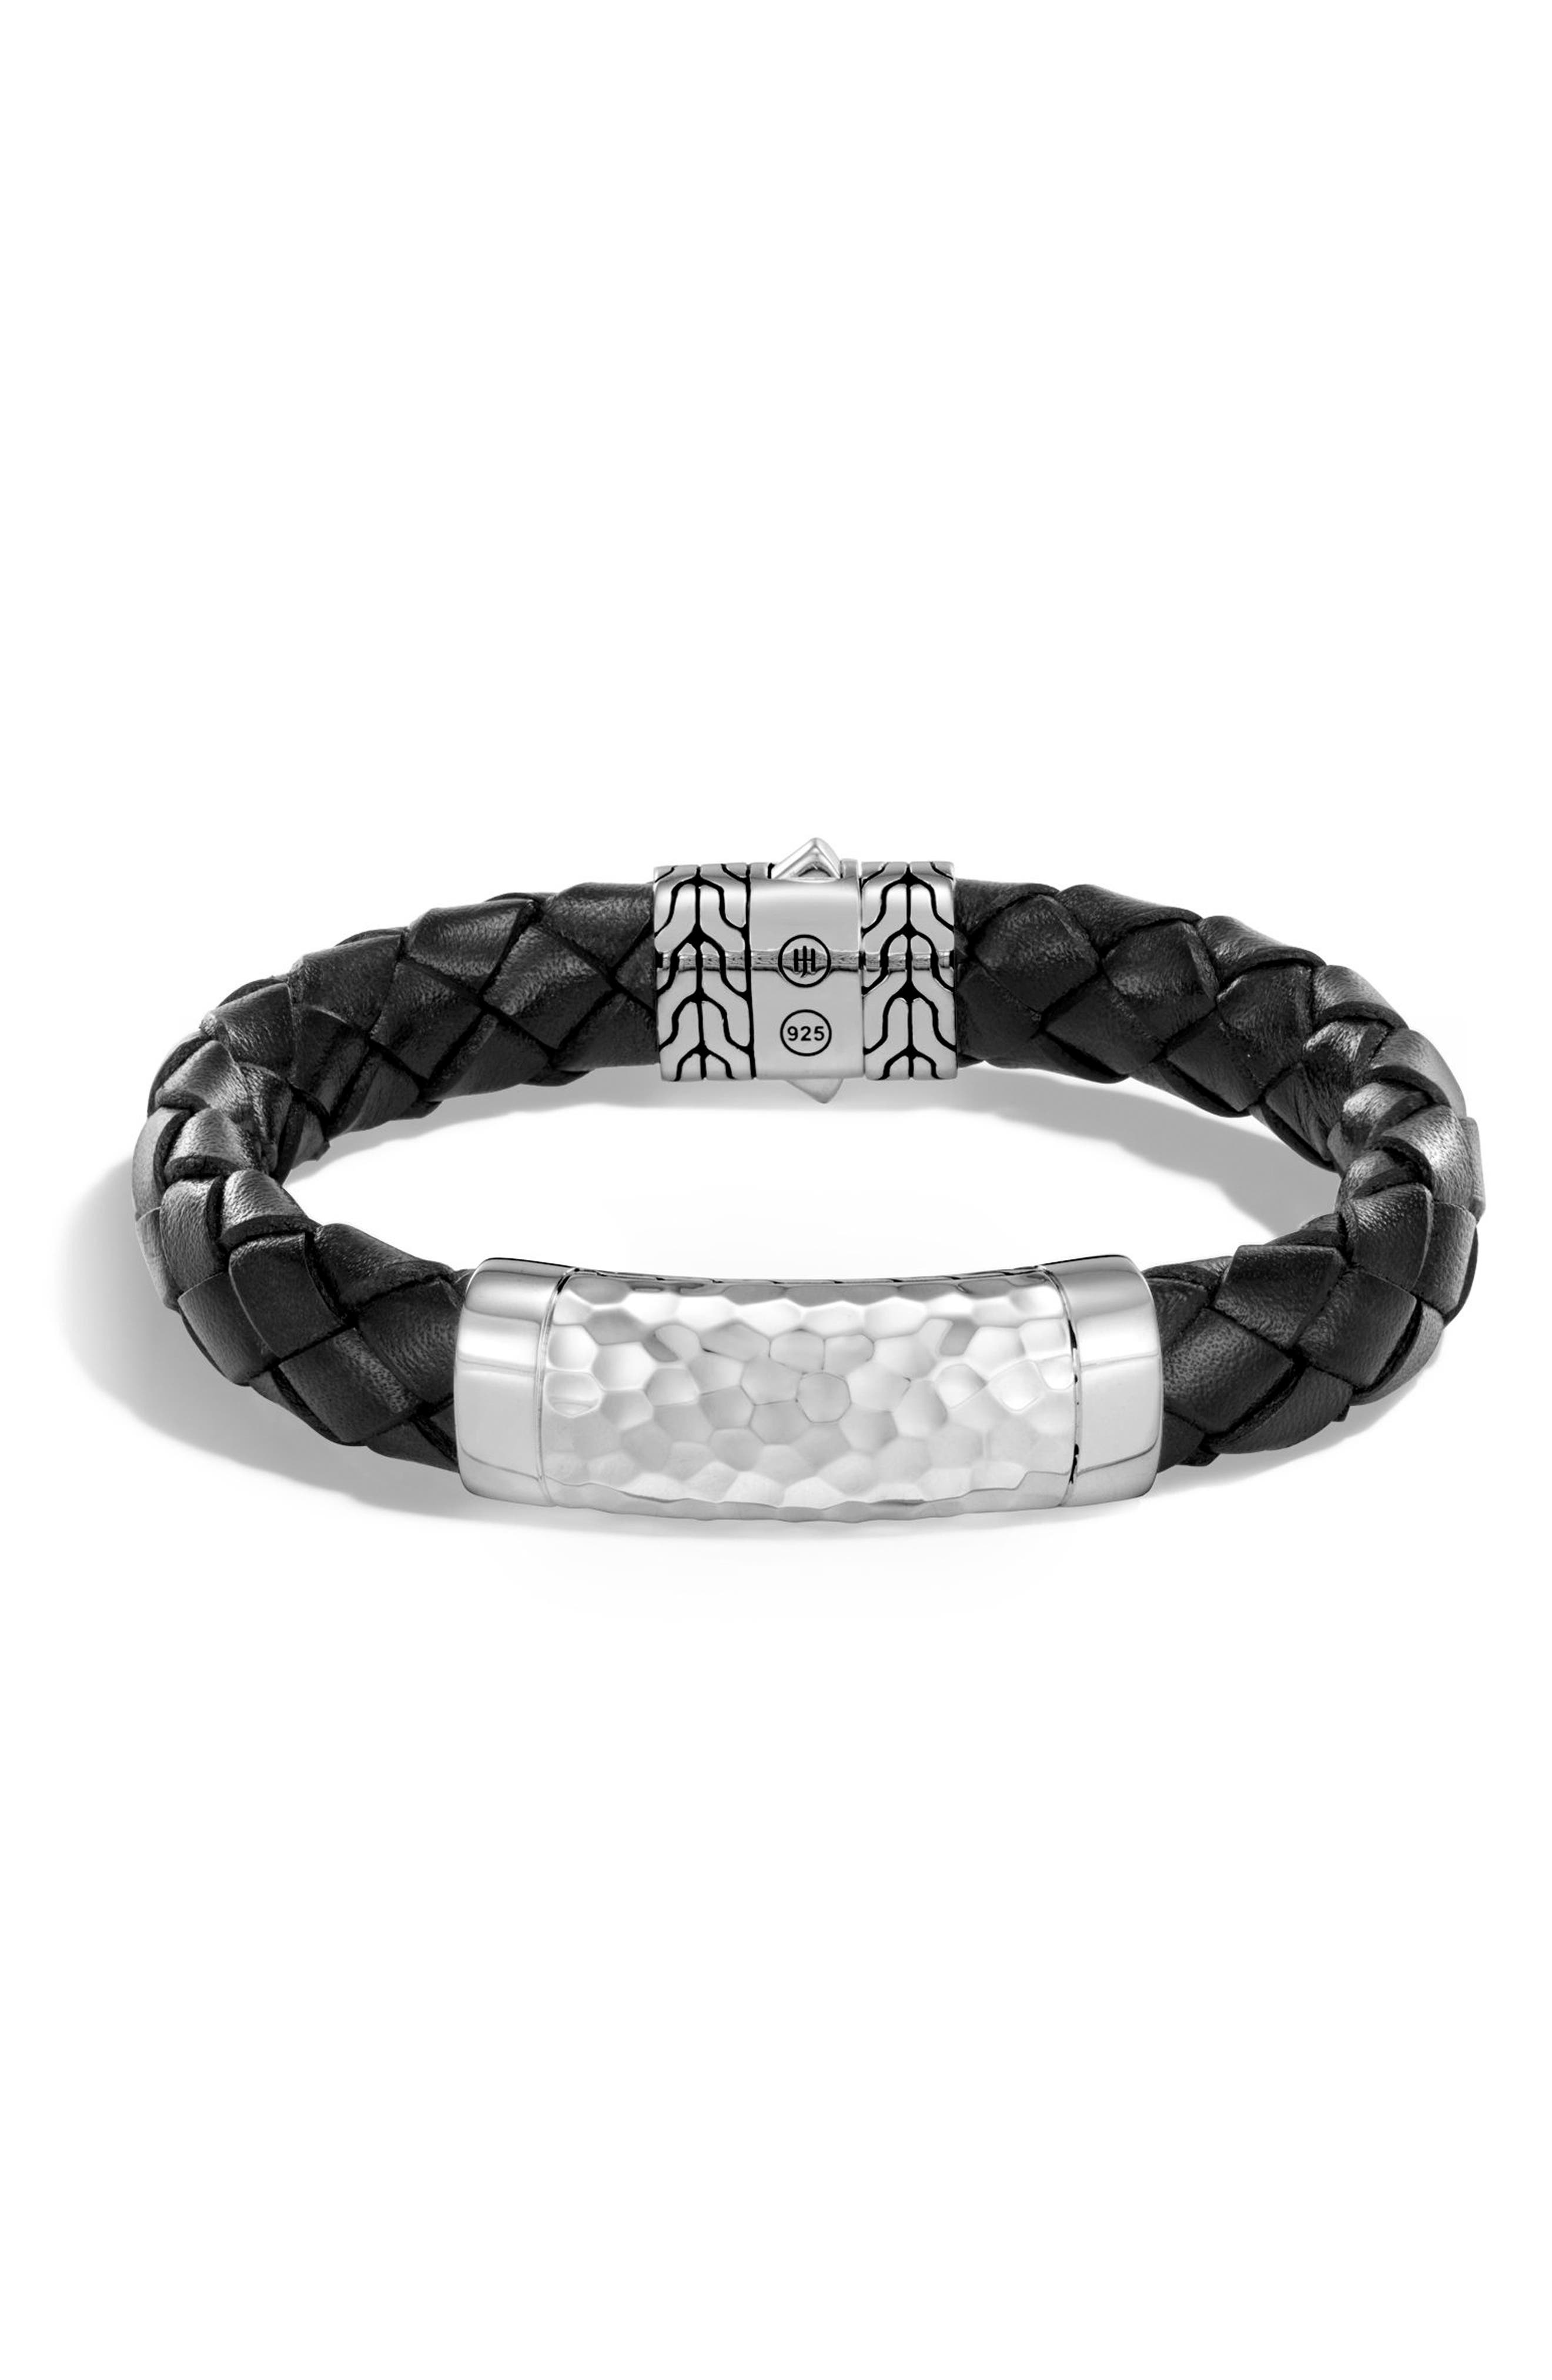 Classic Leather Chain Hammered Silver Large Bracelet,                         Main,                         color, SILVER/ BLACK